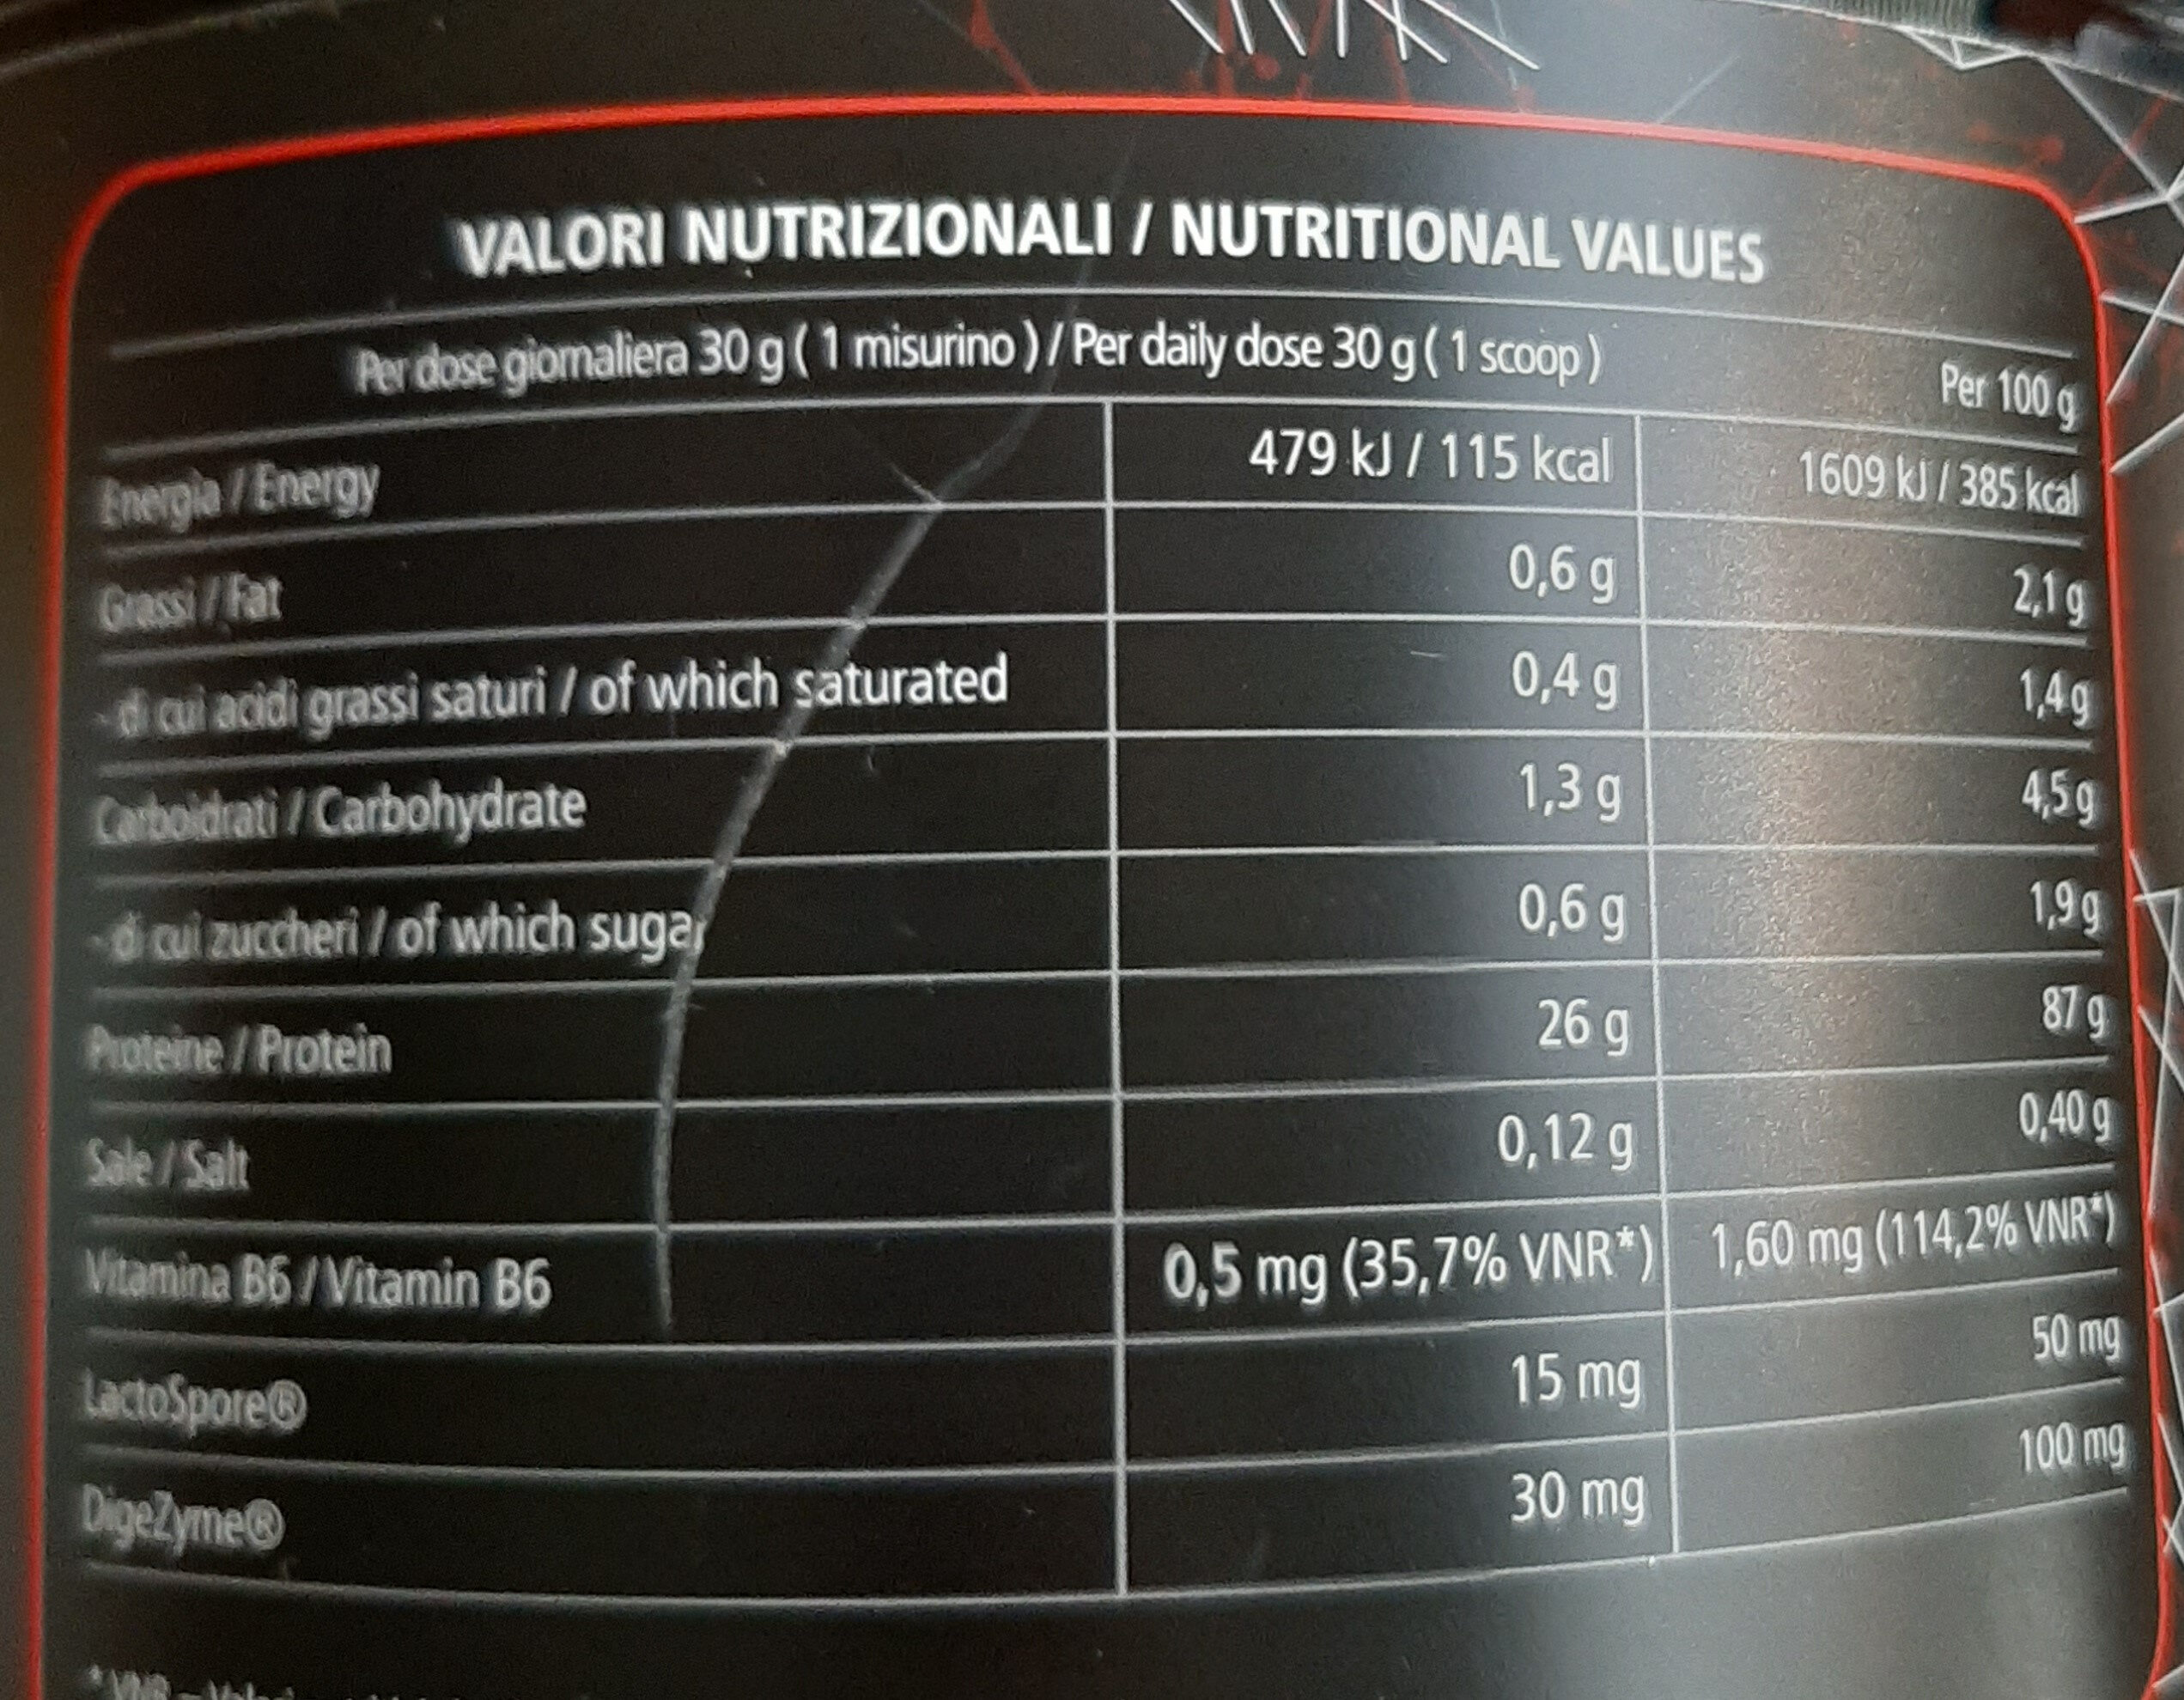 Iso pure professional - Informations nutritionnelles - it